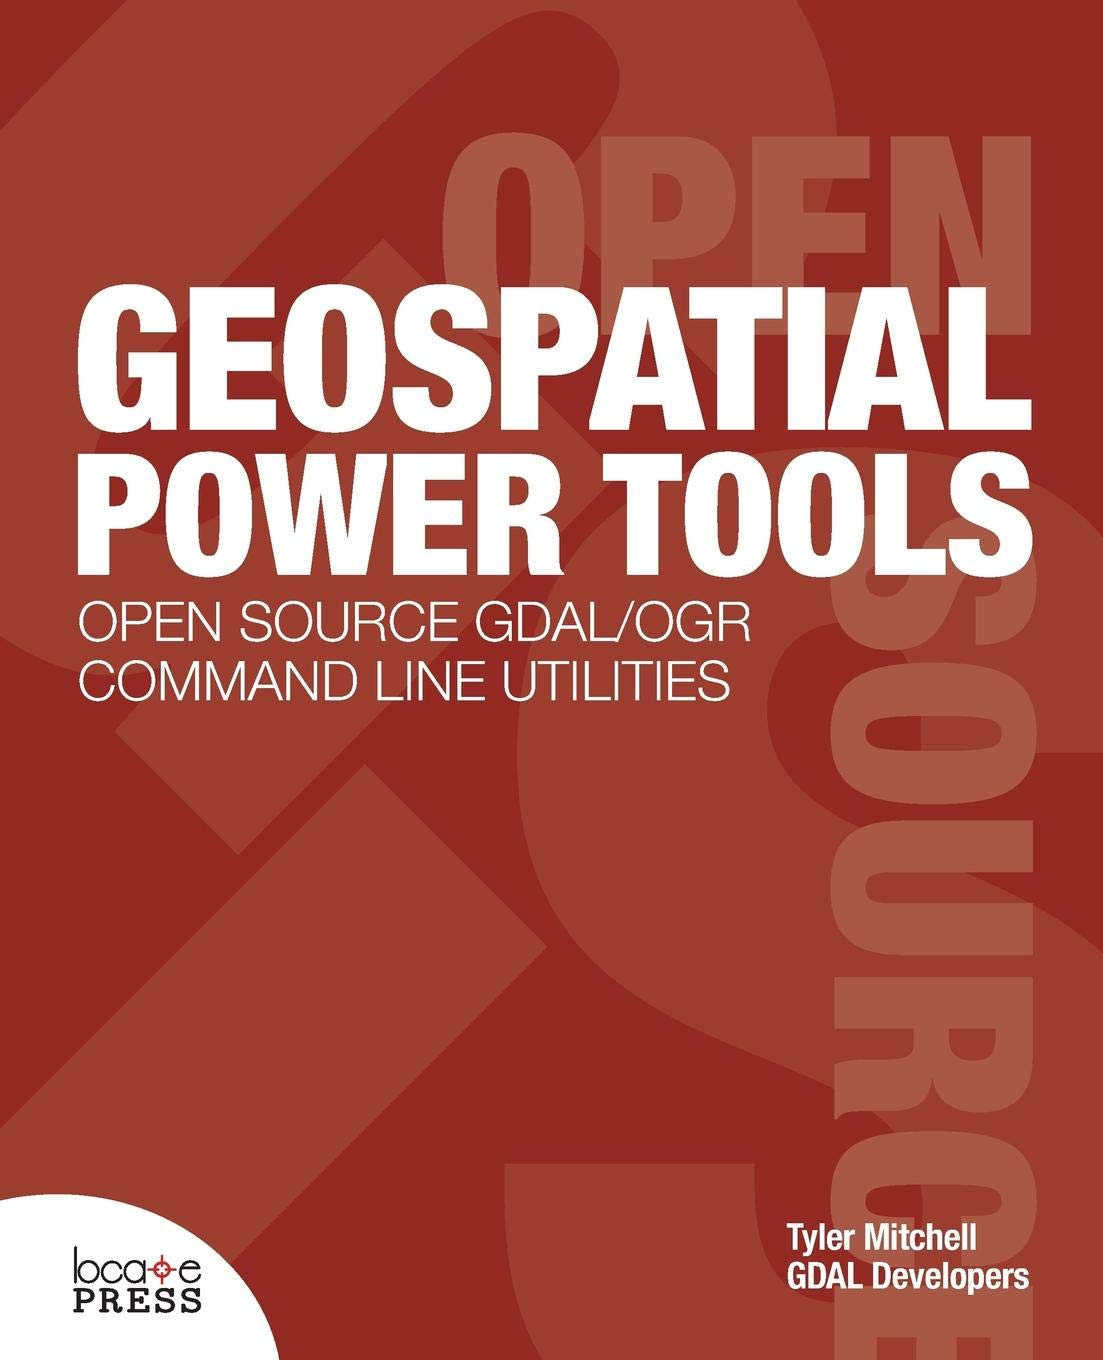 Geospatial Power Tools: Tyler Mitchell, GDAL Developers